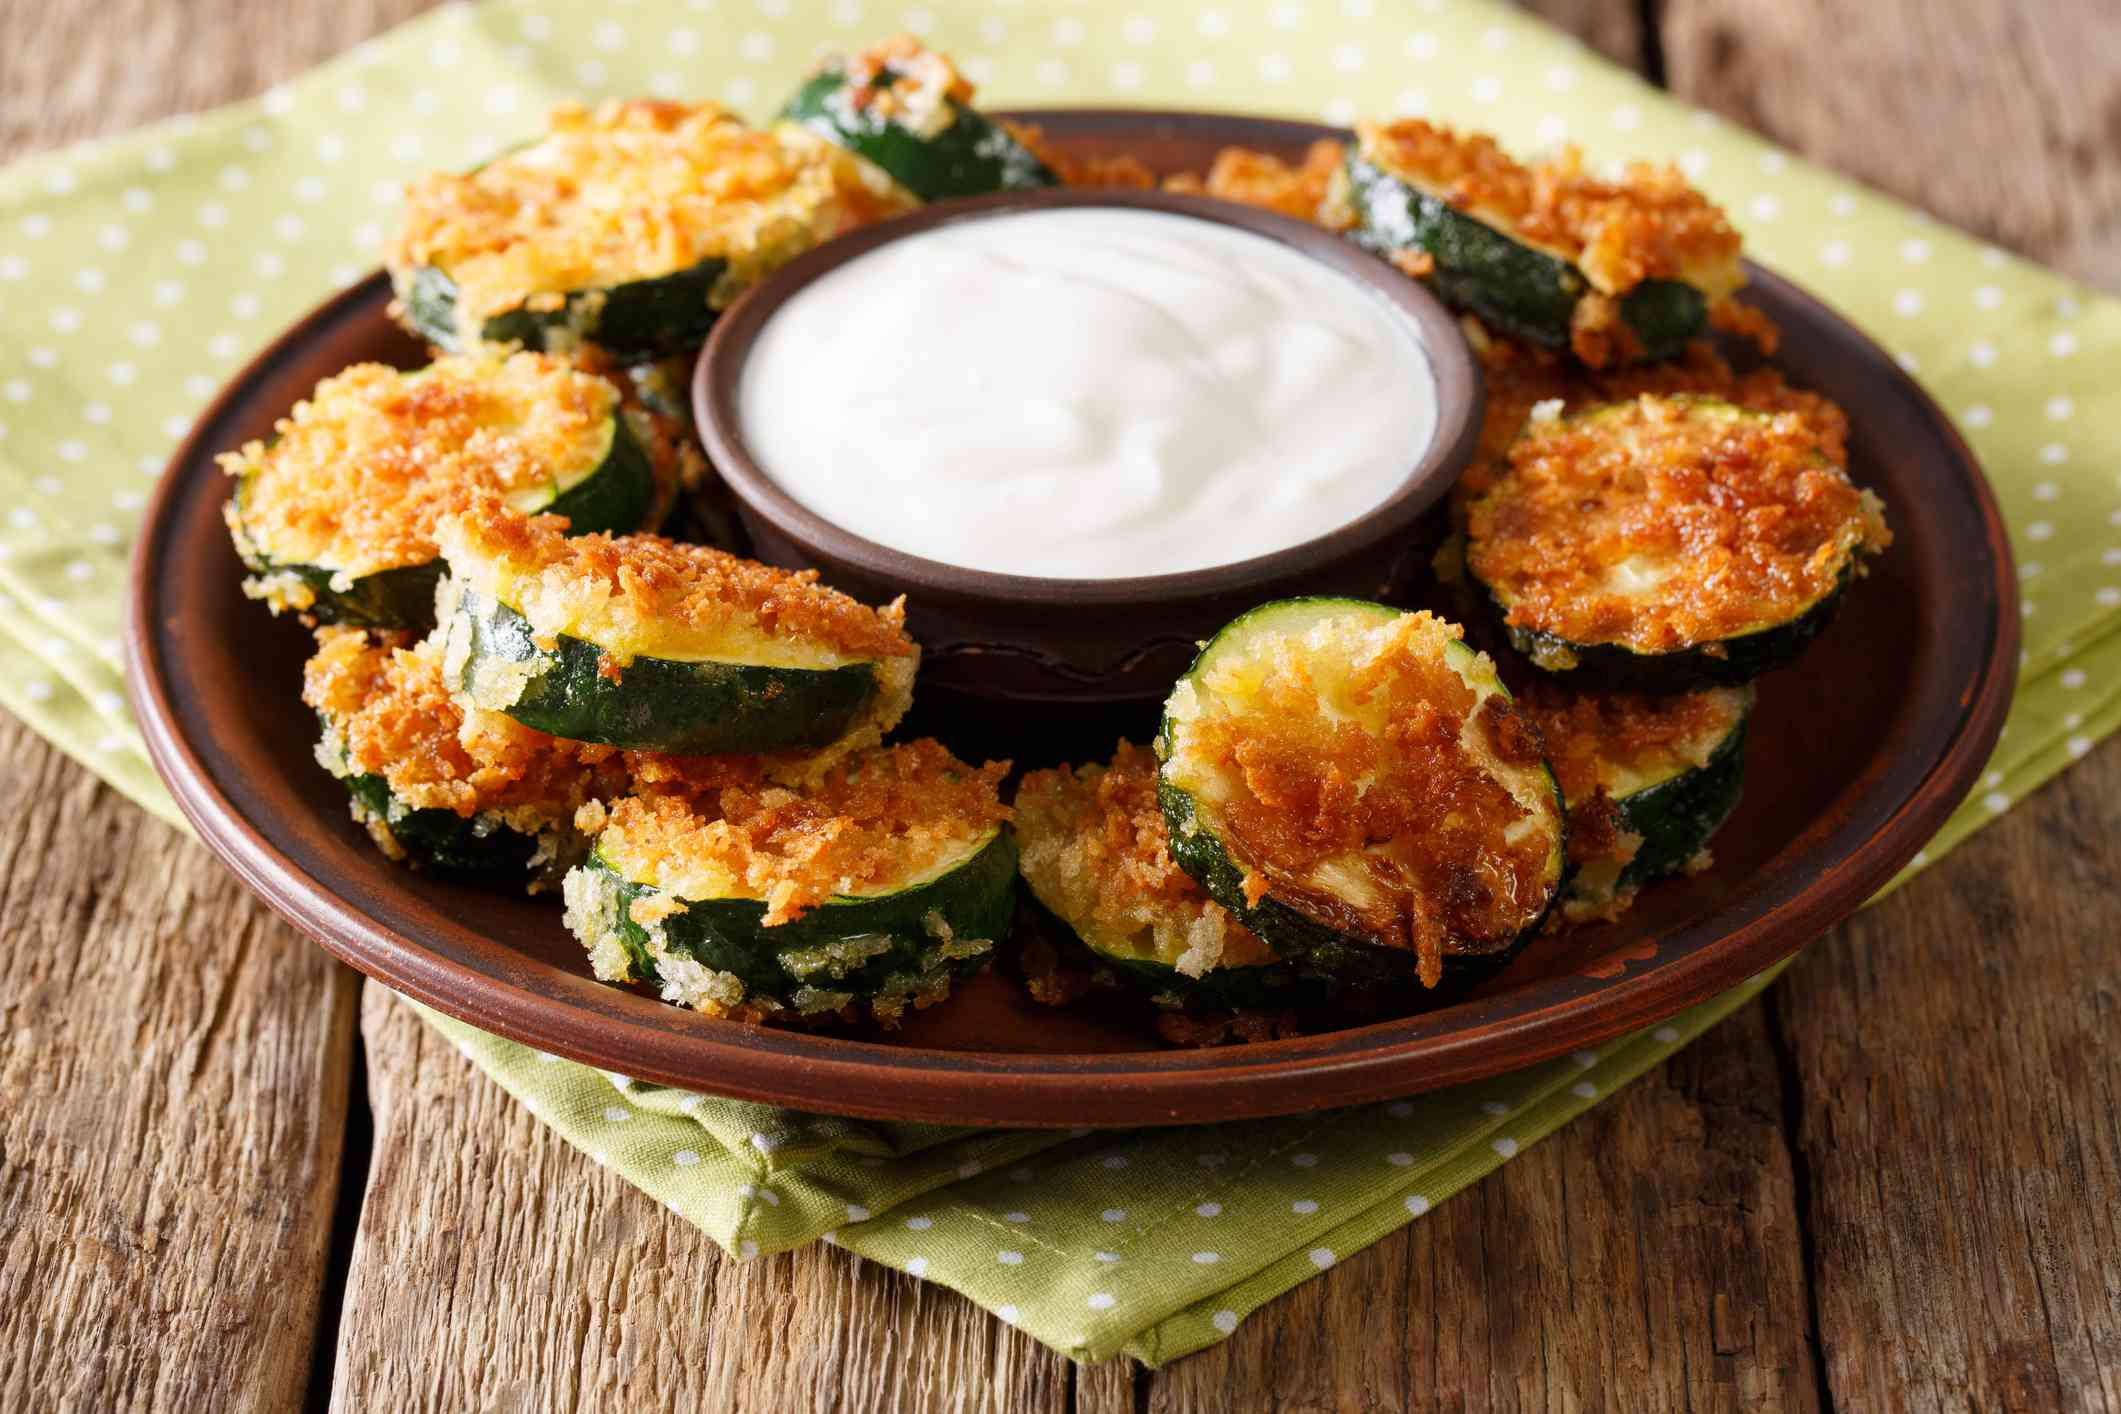 Homemade zucchini slices in breadcrumbs with sour cream close-up. horizontal